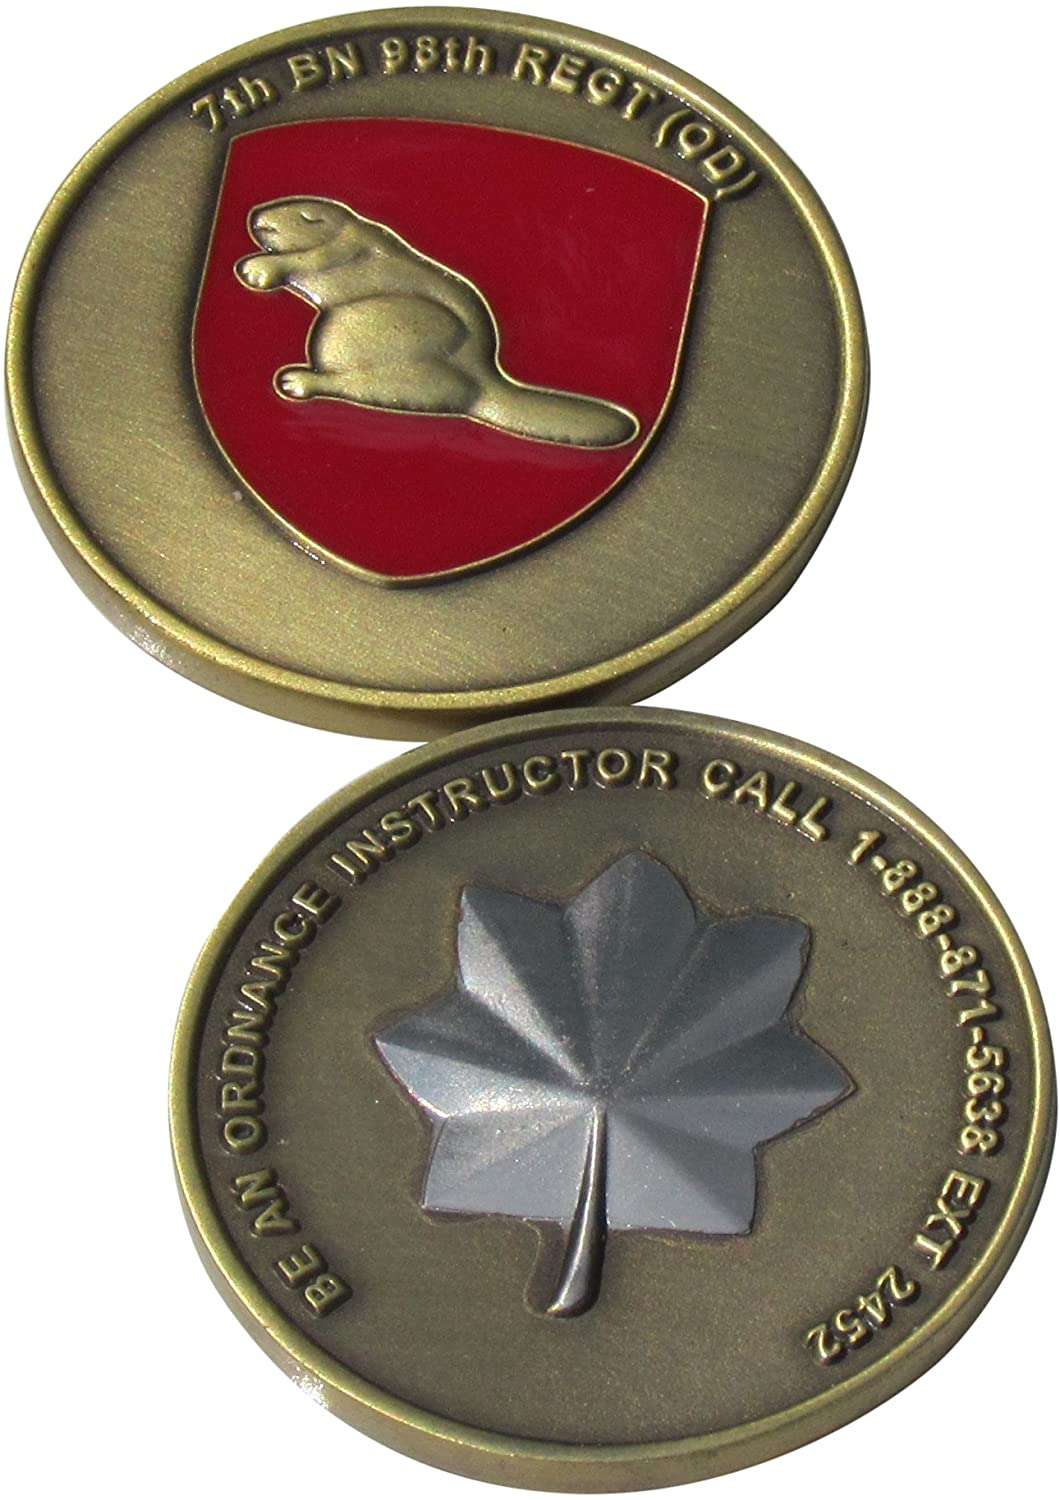 7th BN 98th Regiment OD Ordnance Instructor Challenge Coin